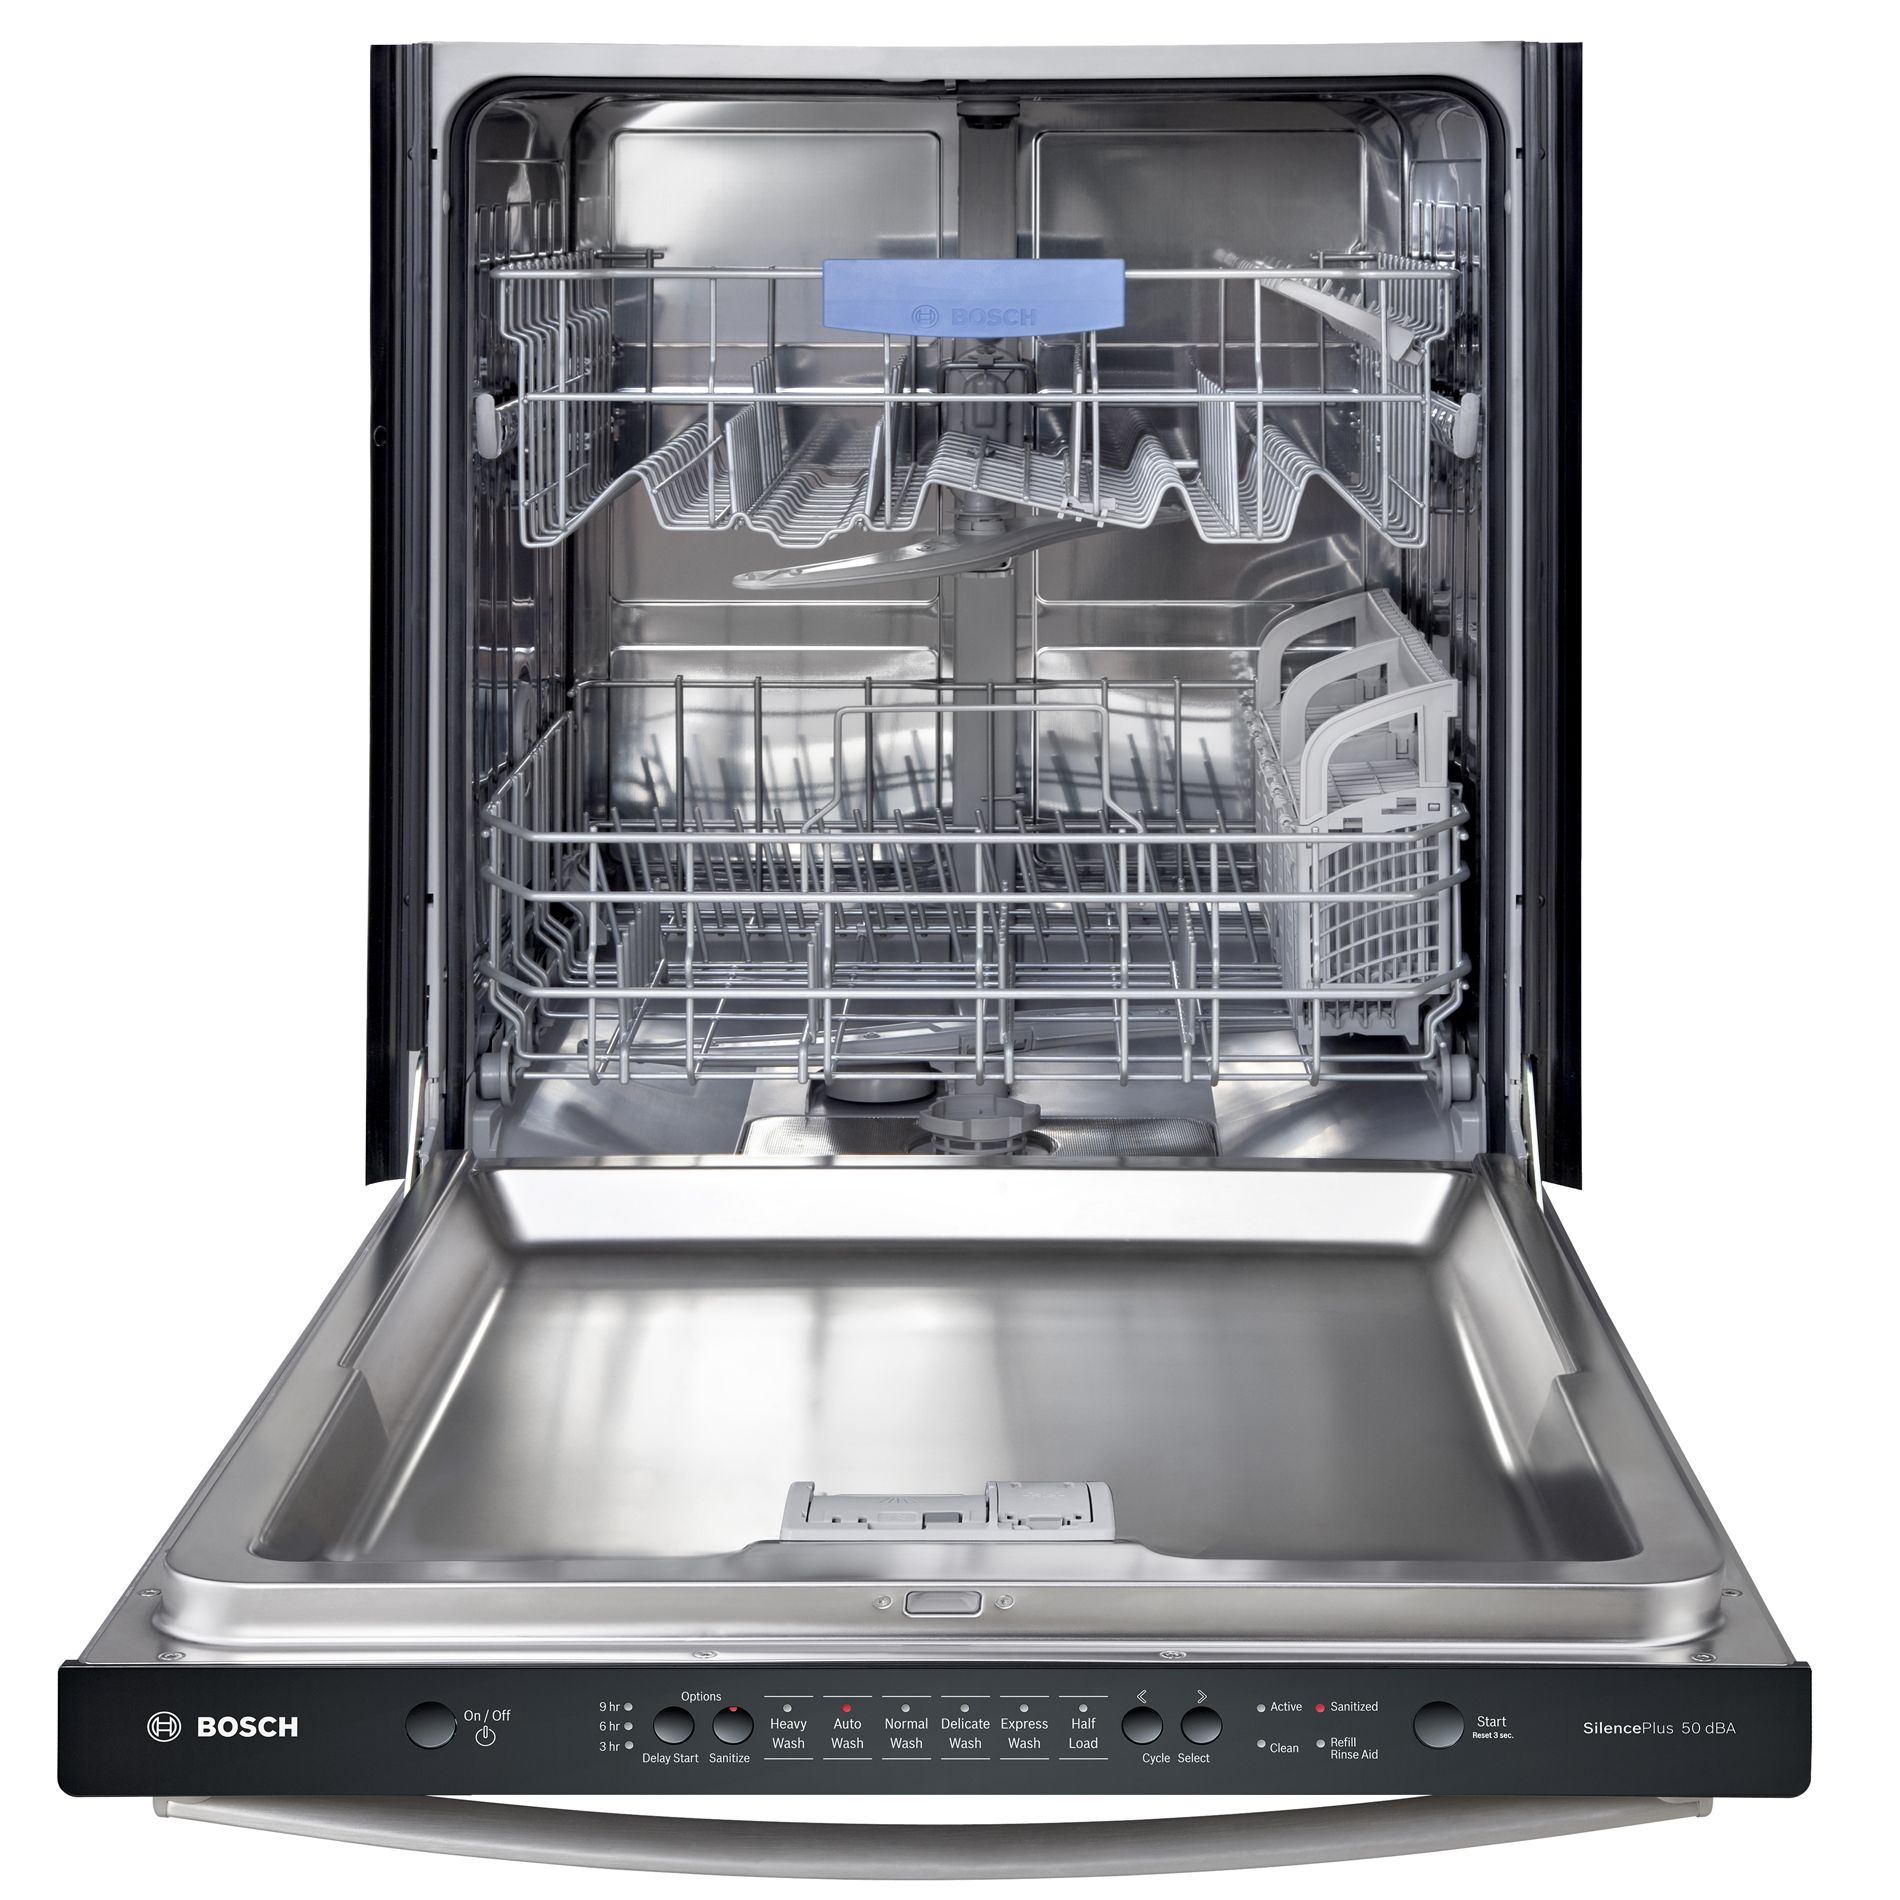 "Bosch SHX3AR75UC 24"" Built-In Dishwasher - Stainless Steel"